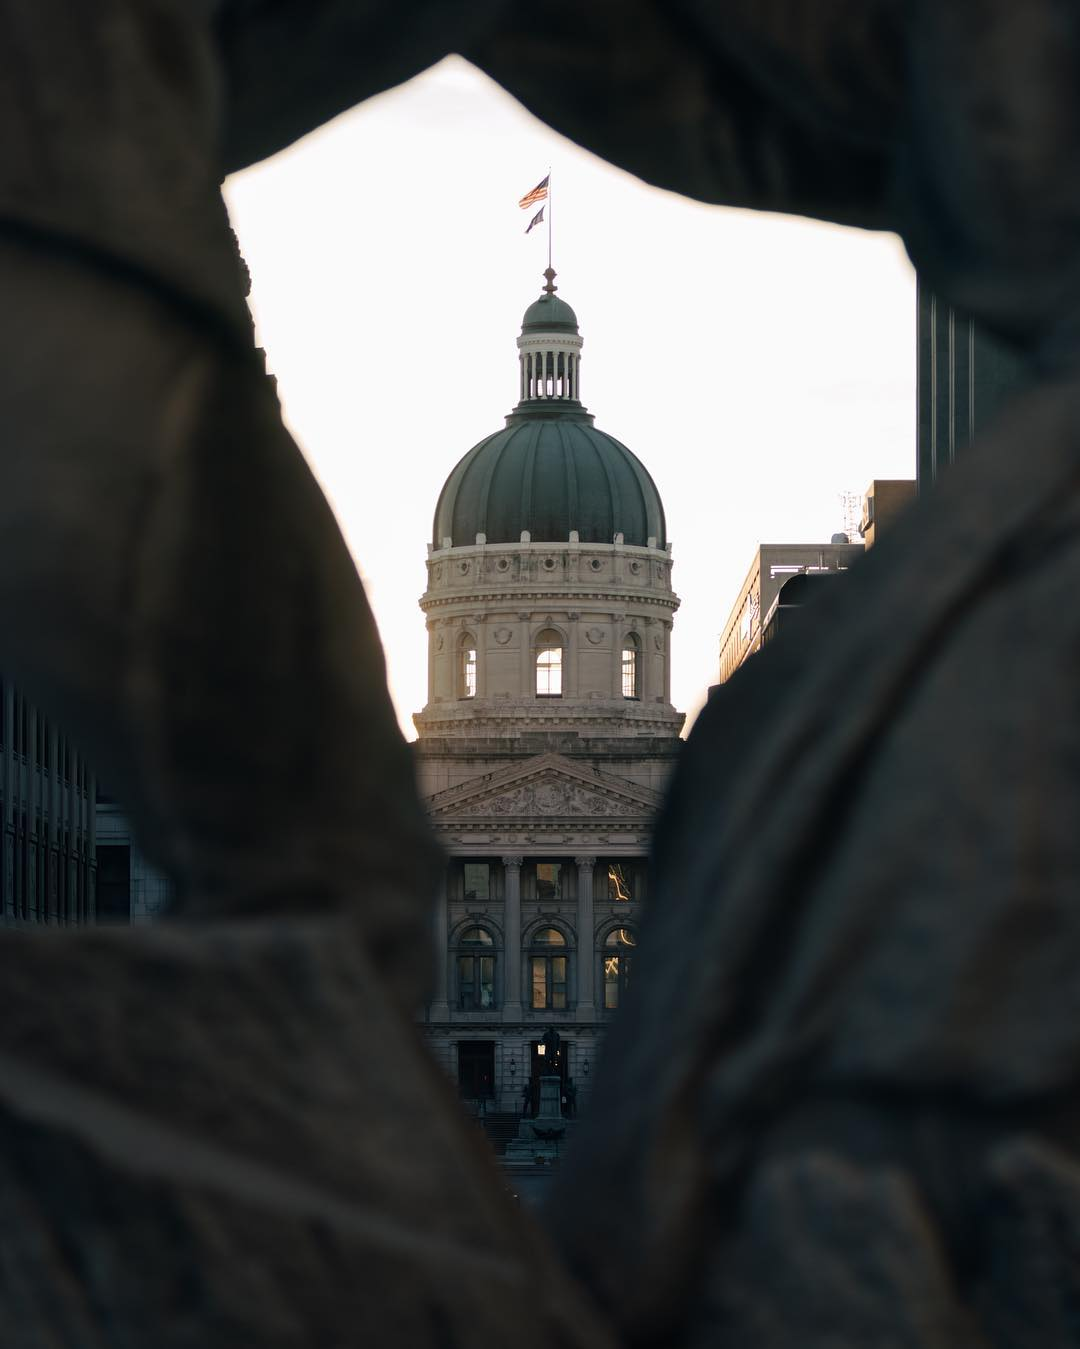 The Indiana Statehouse pays homage to the Parthenon. While Indiana limestone can be found throughout the structure, the doors are made up of Indiana Oak. Took the state four times to get it situated so better late than never, right?